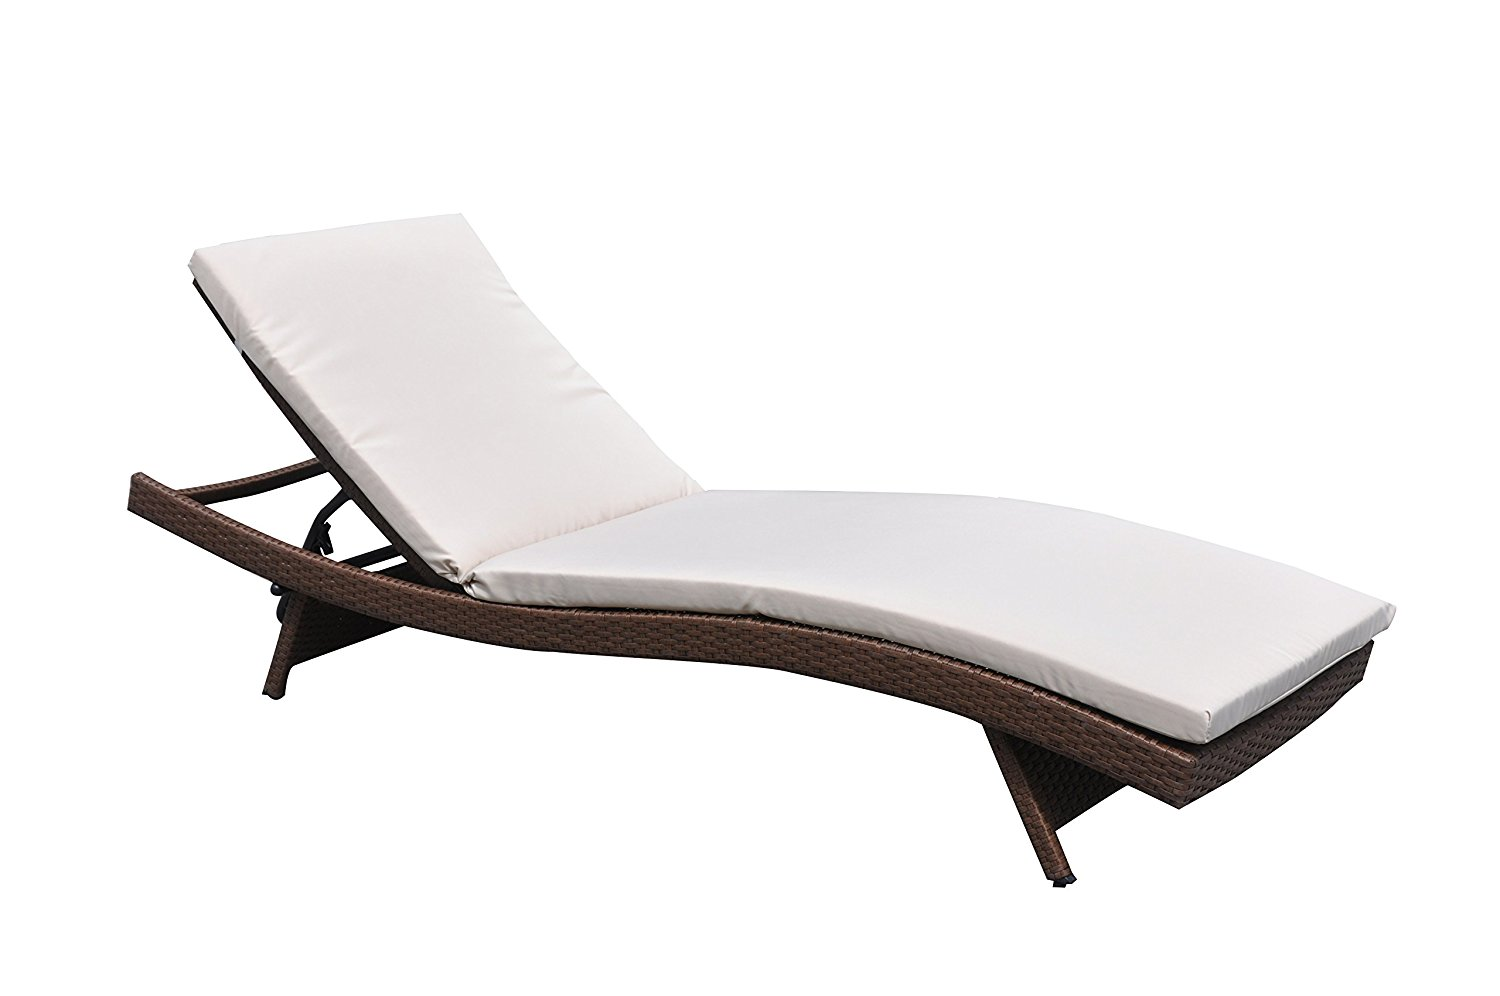 Outdoor Paito Recliner PE Wicker Adjustable Pool Chaise ...